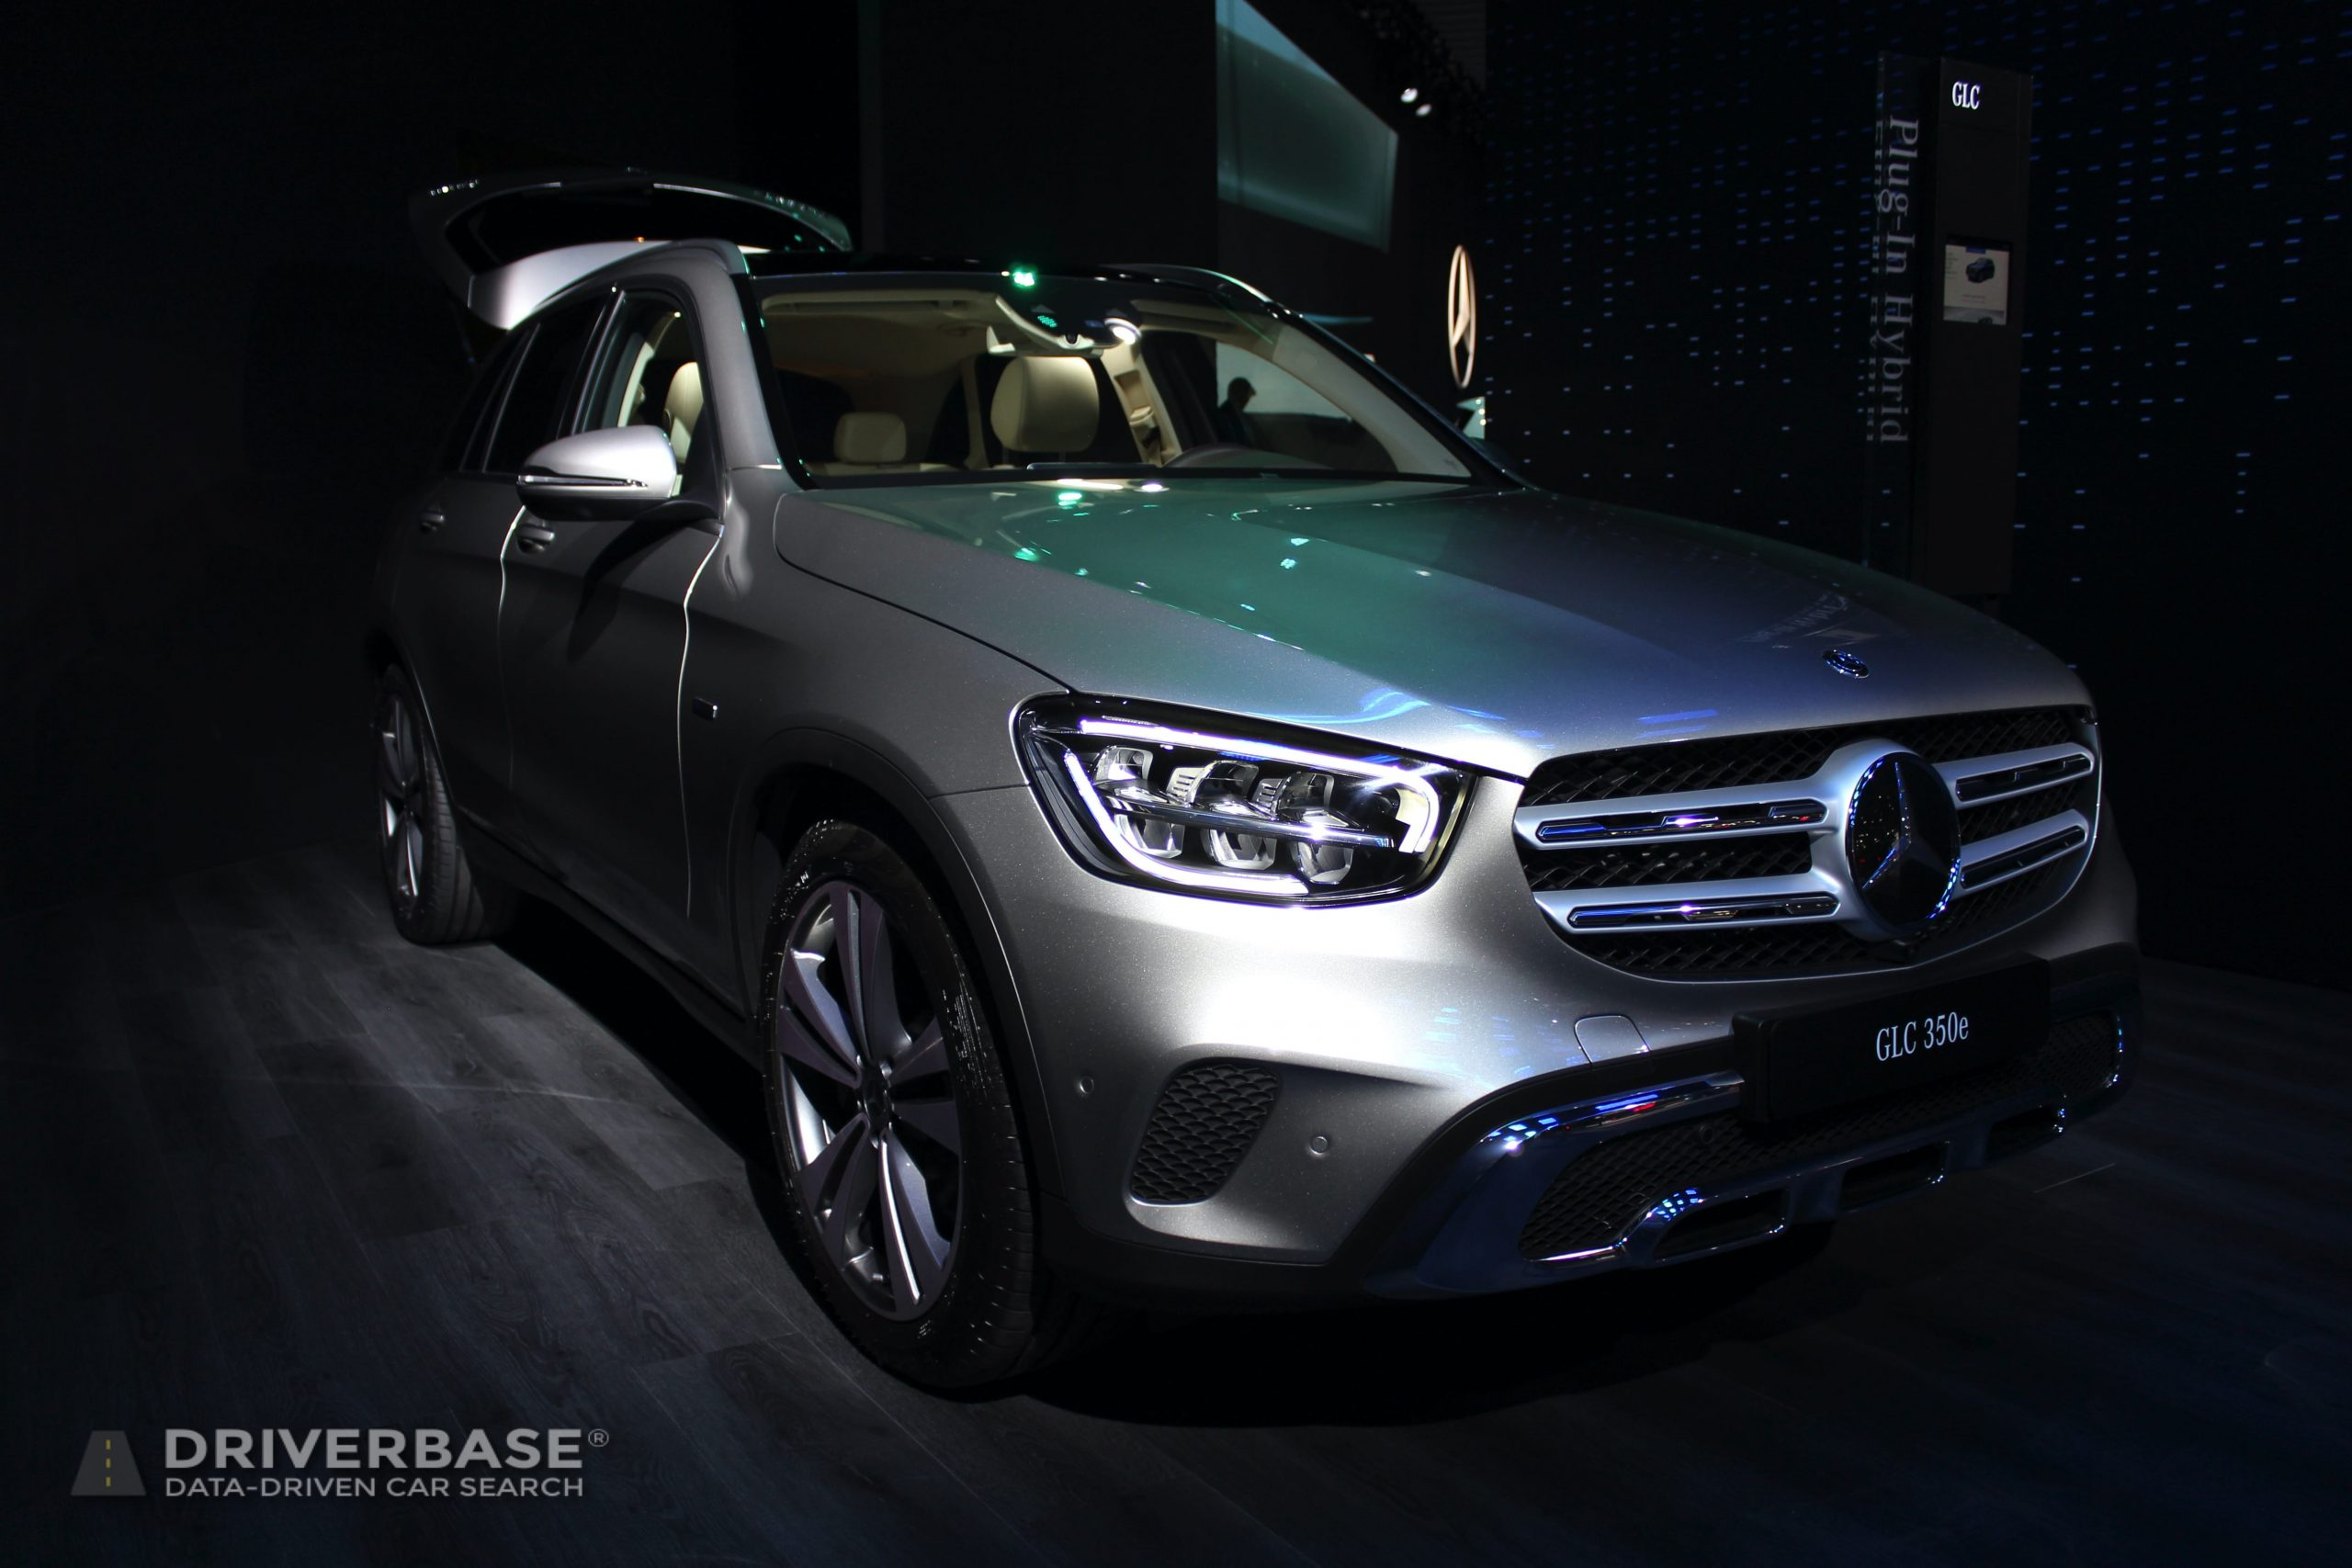 2020 Mercedes-Benz GLC 350e at the 2019 Los Angeles Auto Show